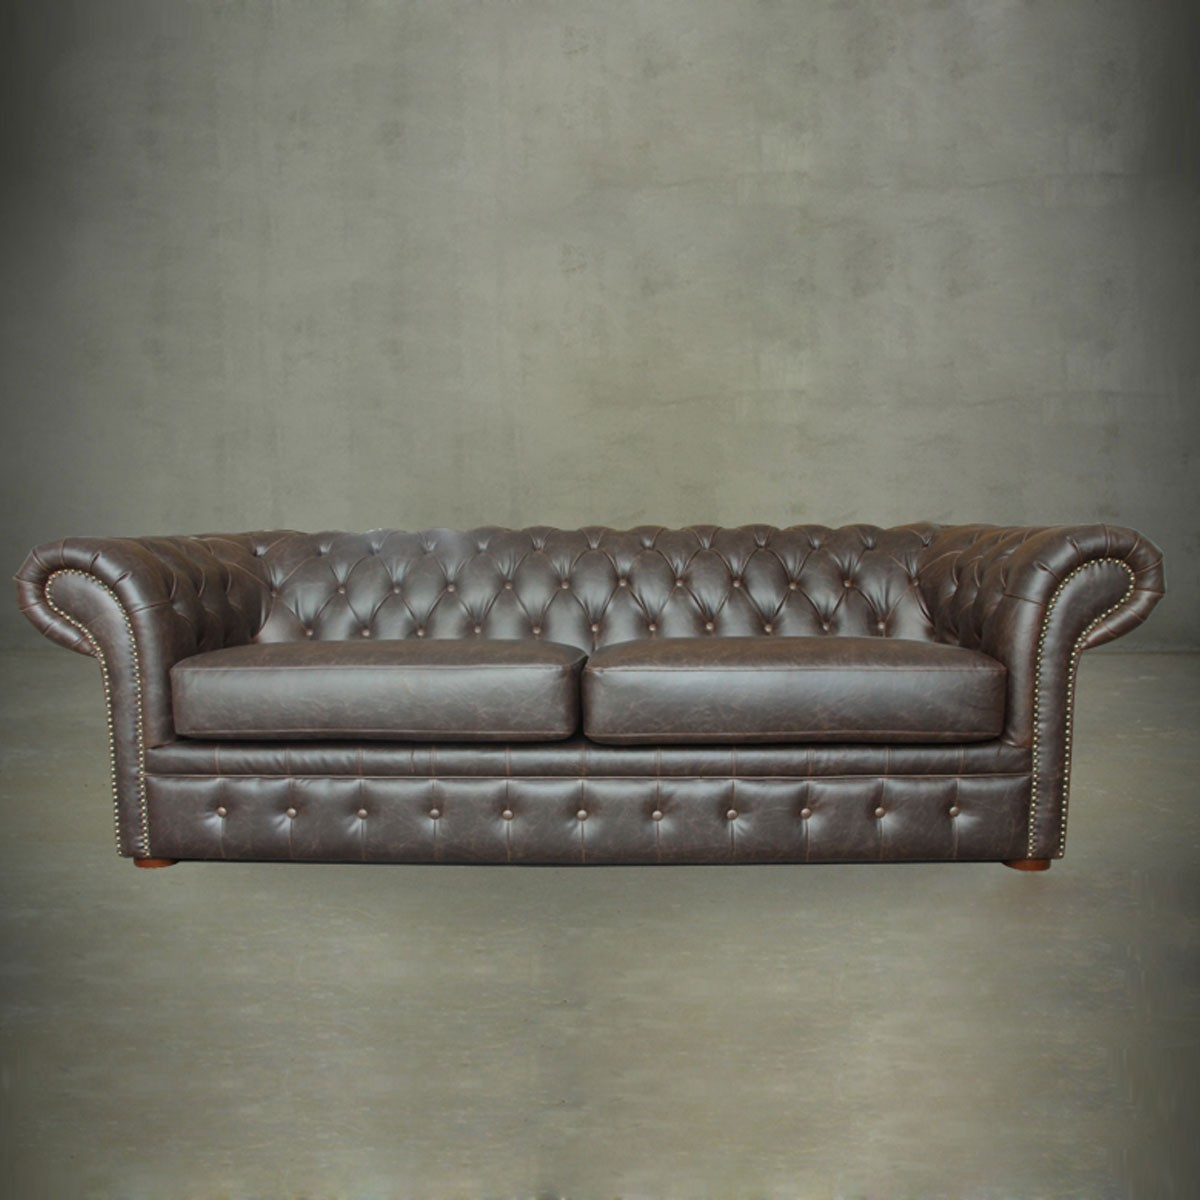 Top Grain Leather Tufted Chesterfield Sofa (PJS06603)